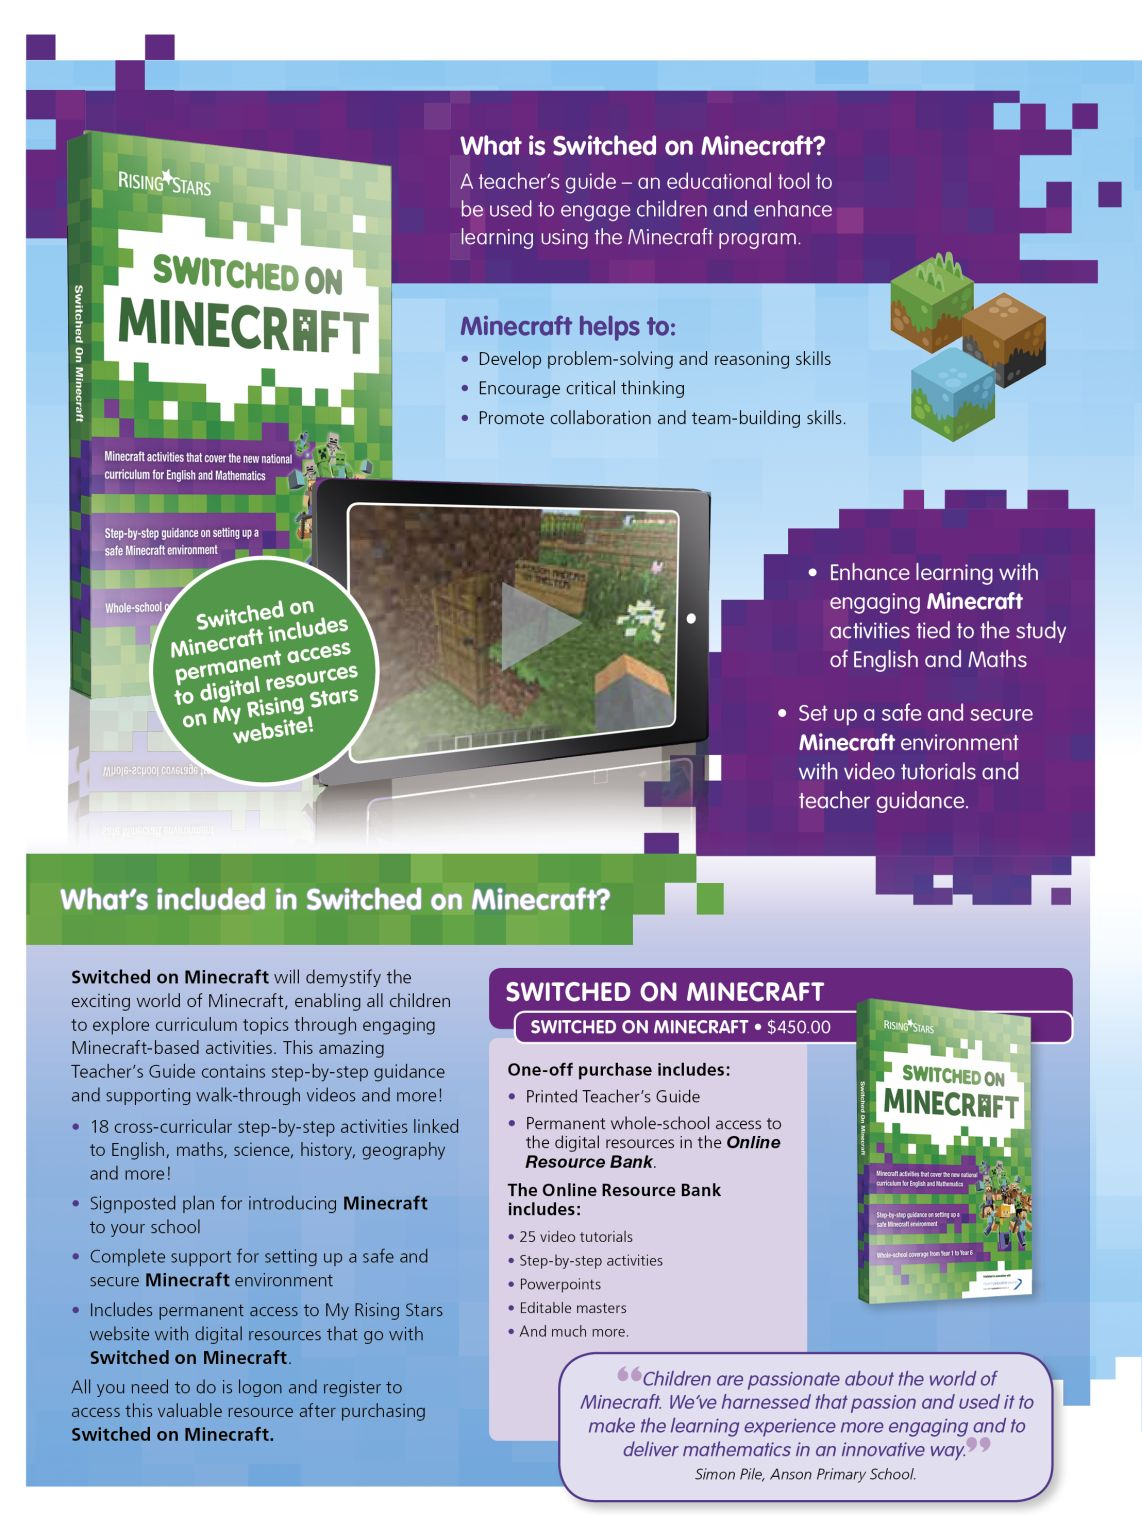 SOMinecraft_p154 Switched On Minecraft  |  Literacy Resources for Primary and Secondary Education | Lioncrest Education